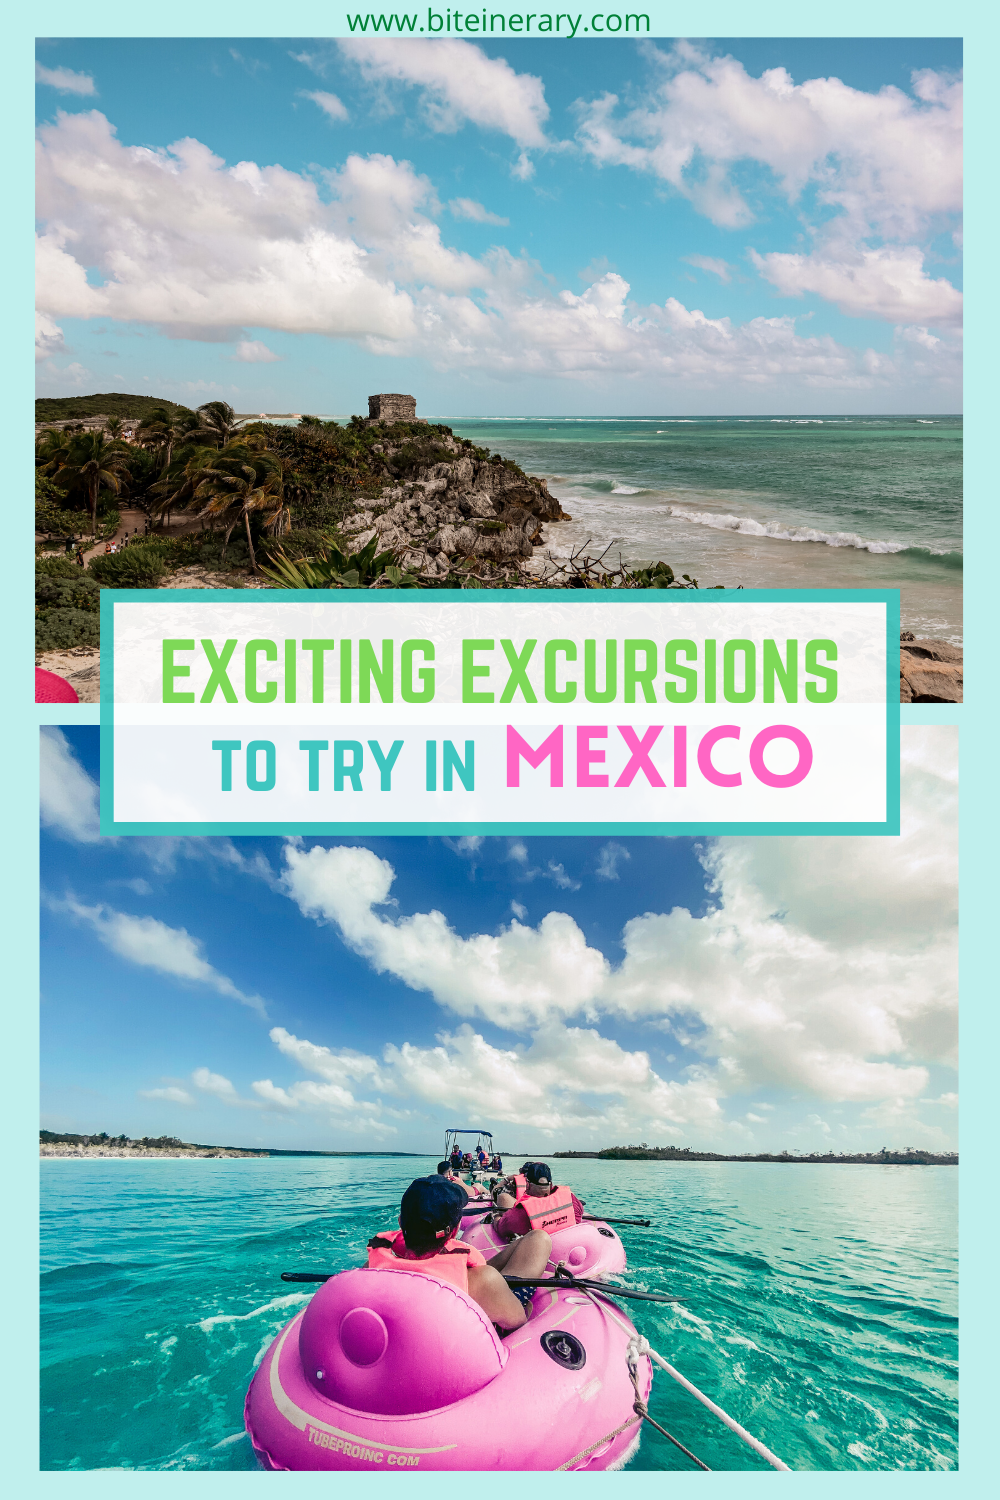 Fun Excursions to Try in Costa Maya and Cozumel Mexico by Biteinerary